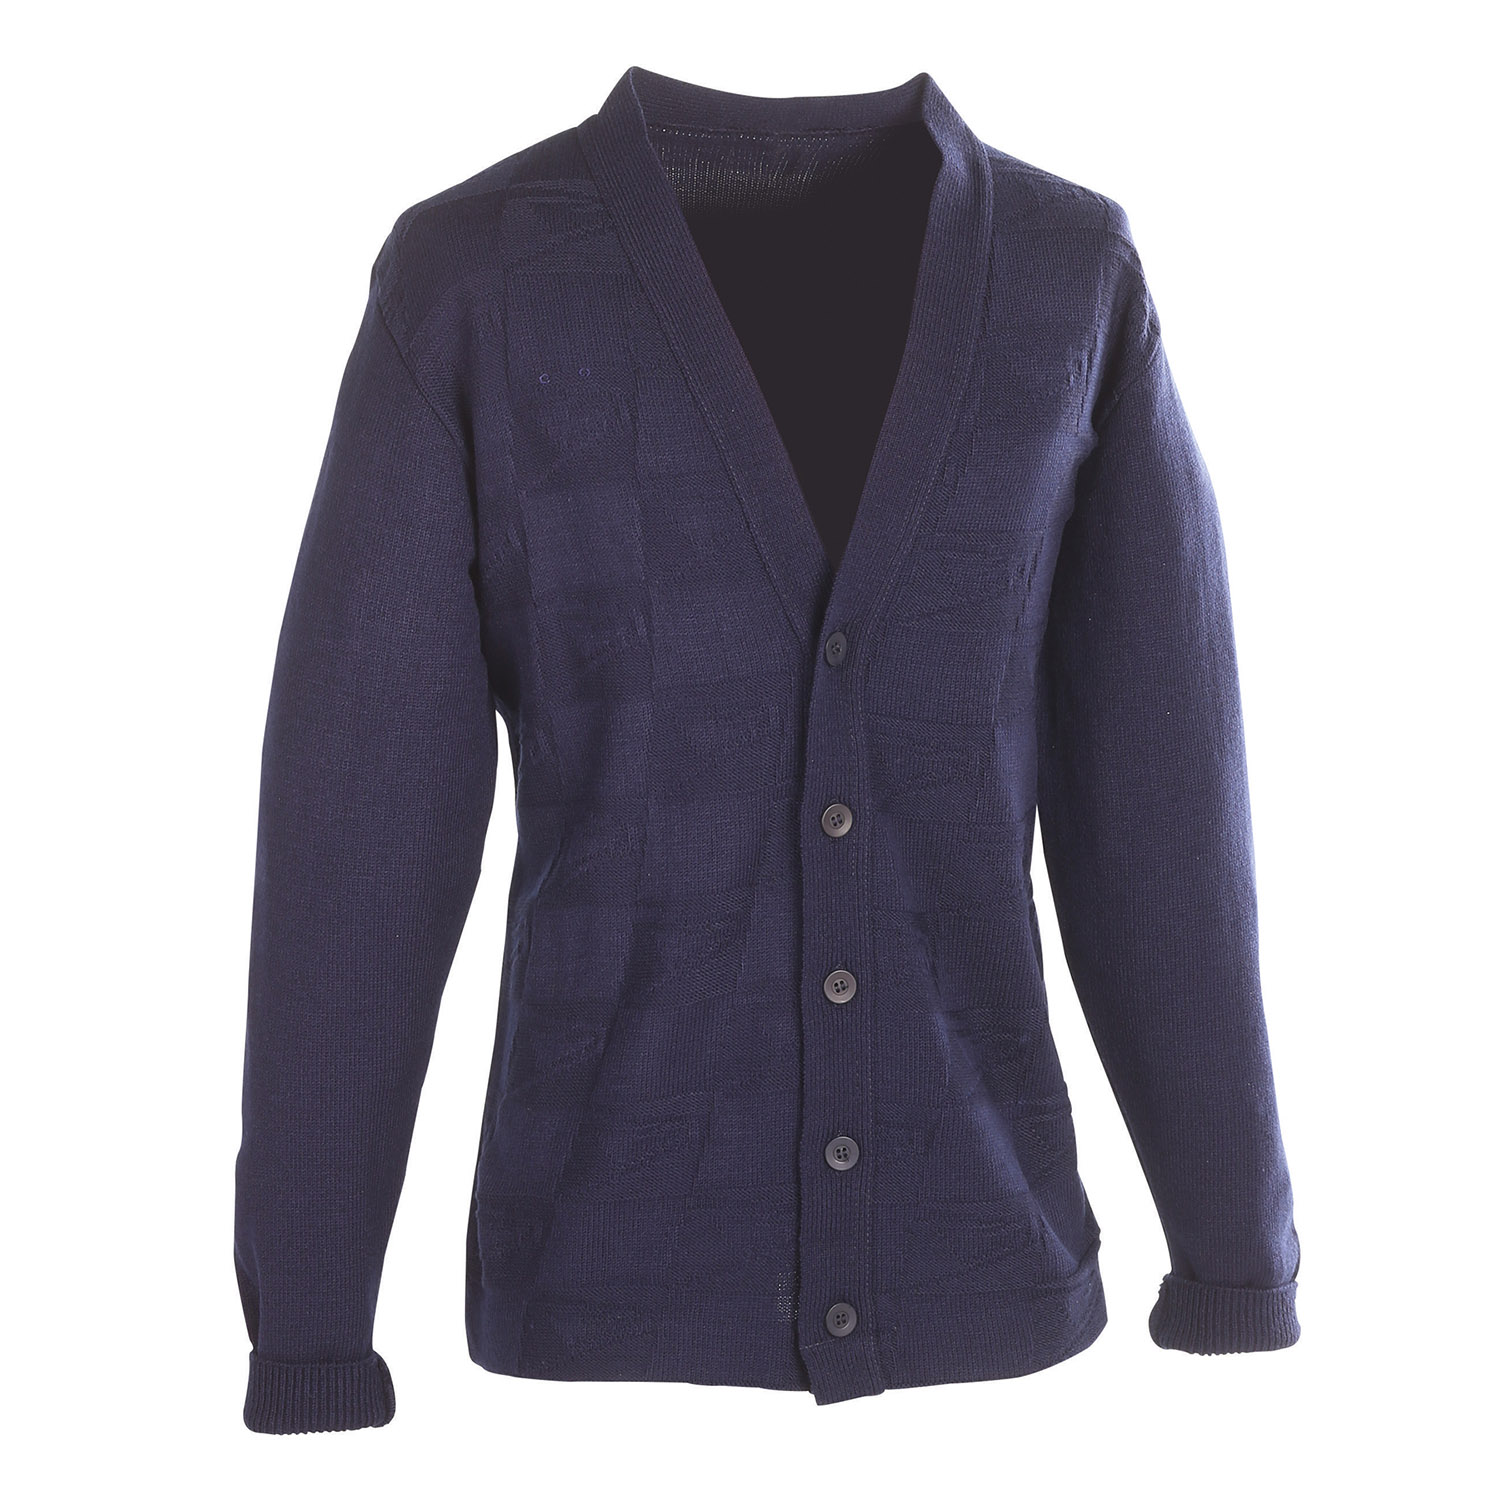 Postal Navy Cardigan Sweater for Window Clerks (CL300N)